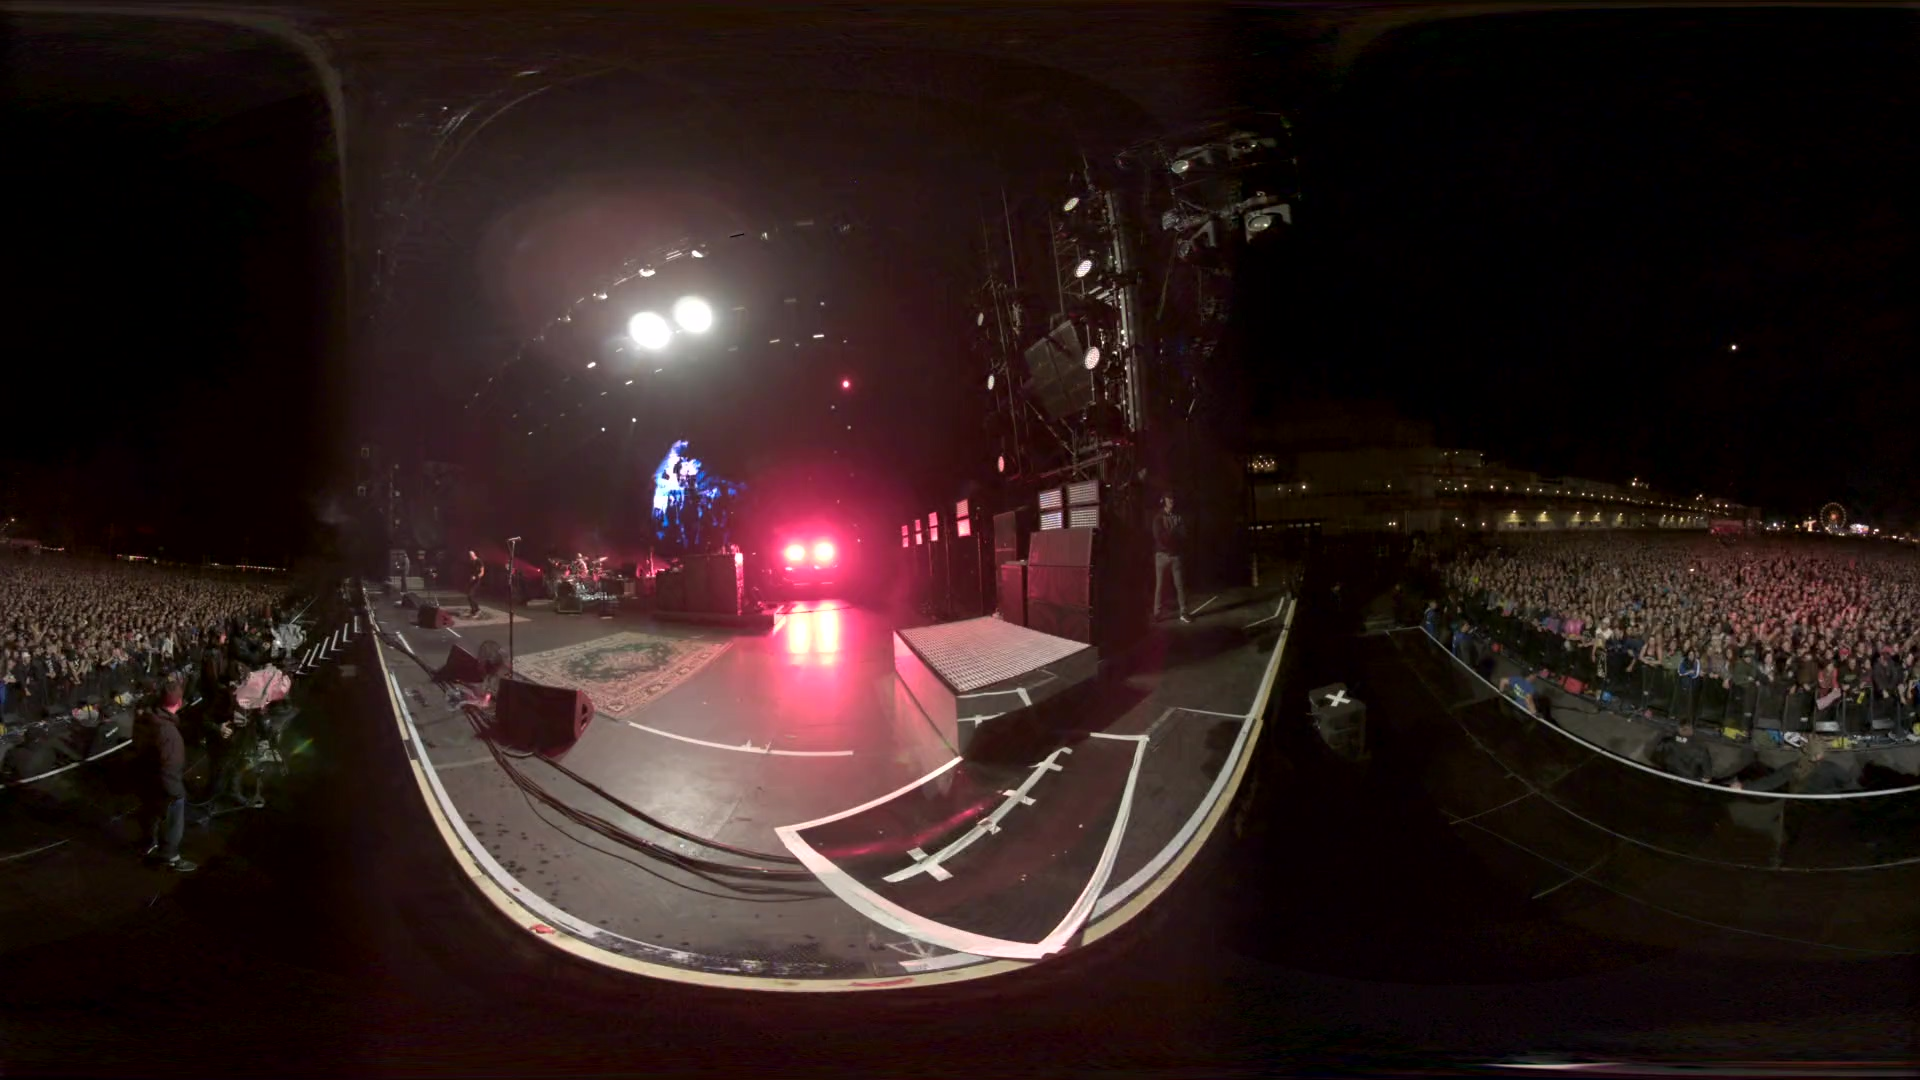 System of a Down 2017-06-04 Rock am Ring 2017, Nurburgring, Nurburg, Germany (360 degree cam)